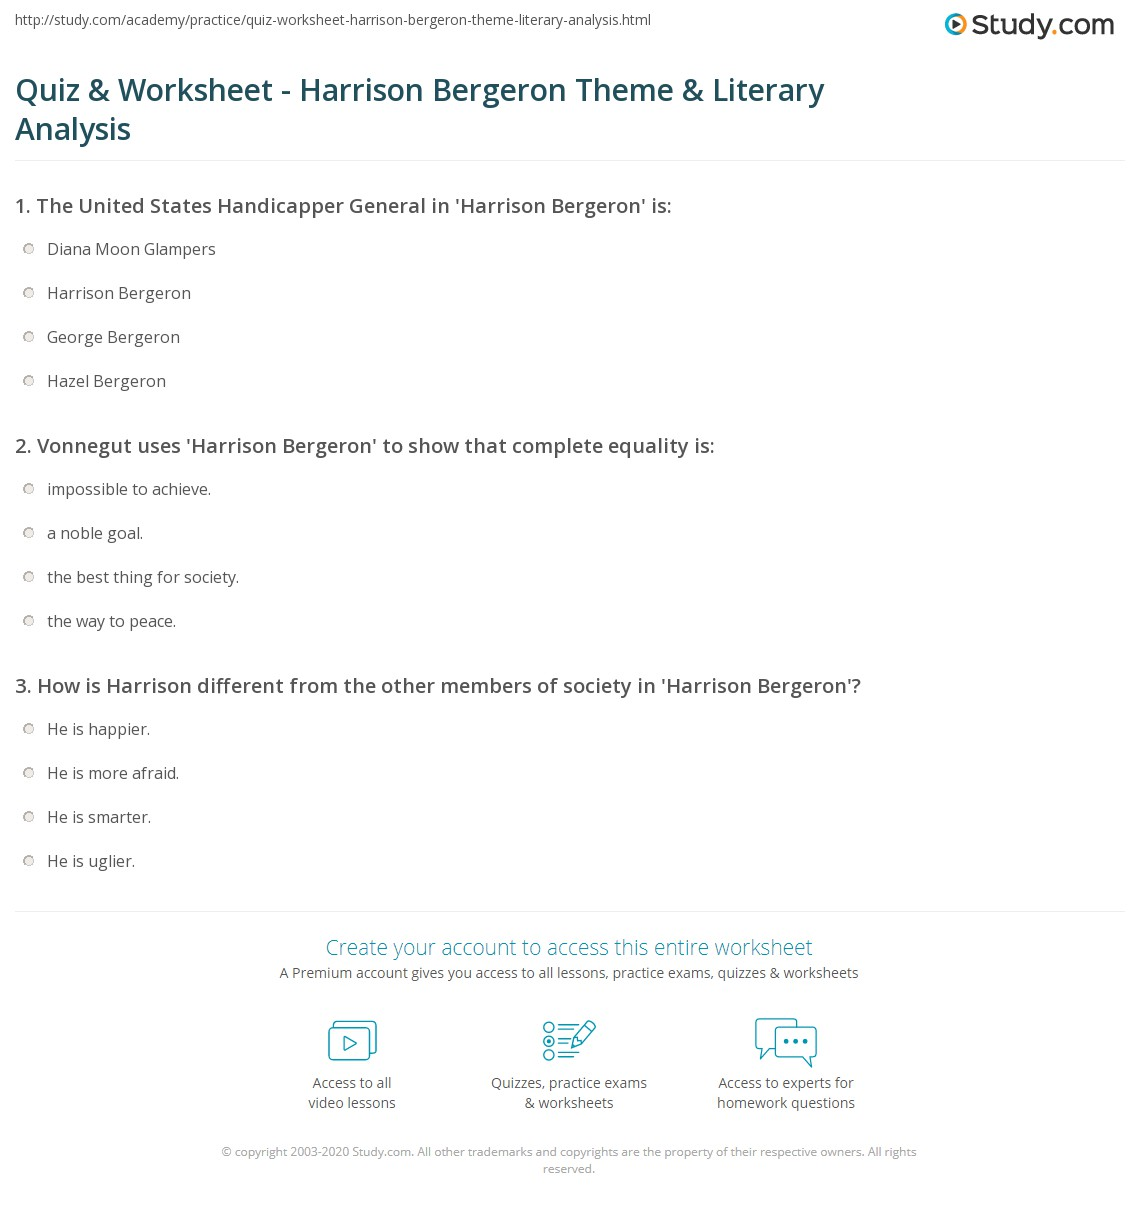 quiz worksheet harrison bergeron theme literary analysis print harrison bergeron theme literary analysis worksheet